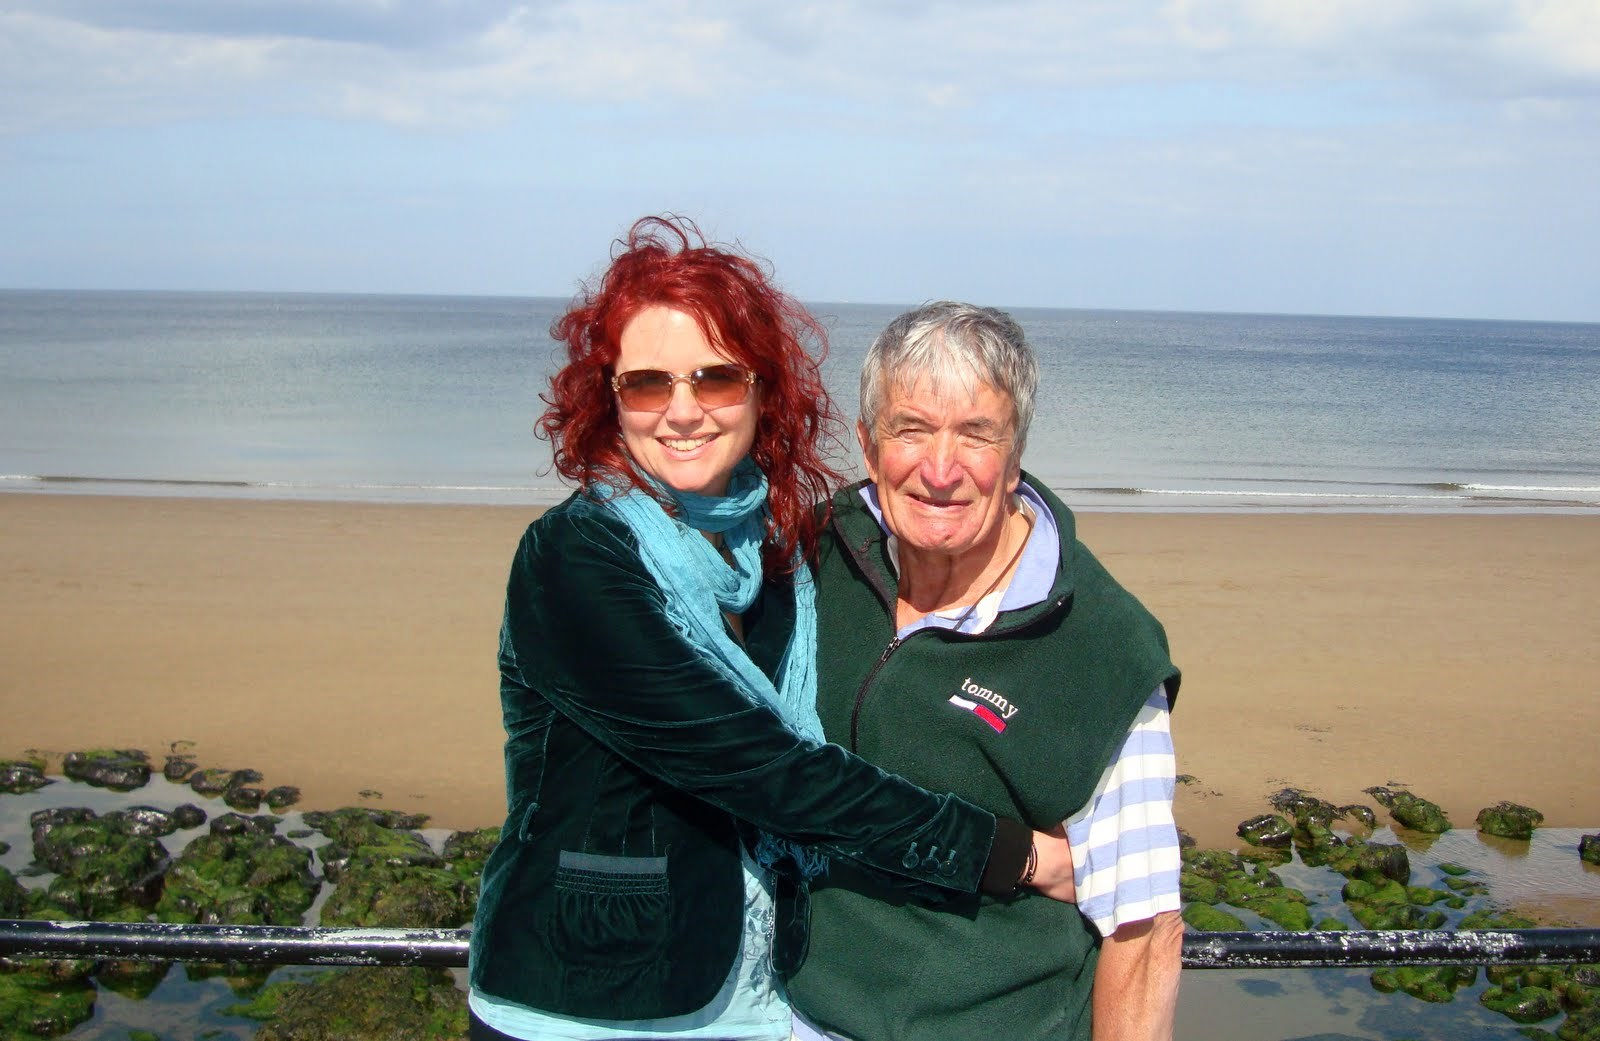 Dad and me (Susy) at Whitby in 2011